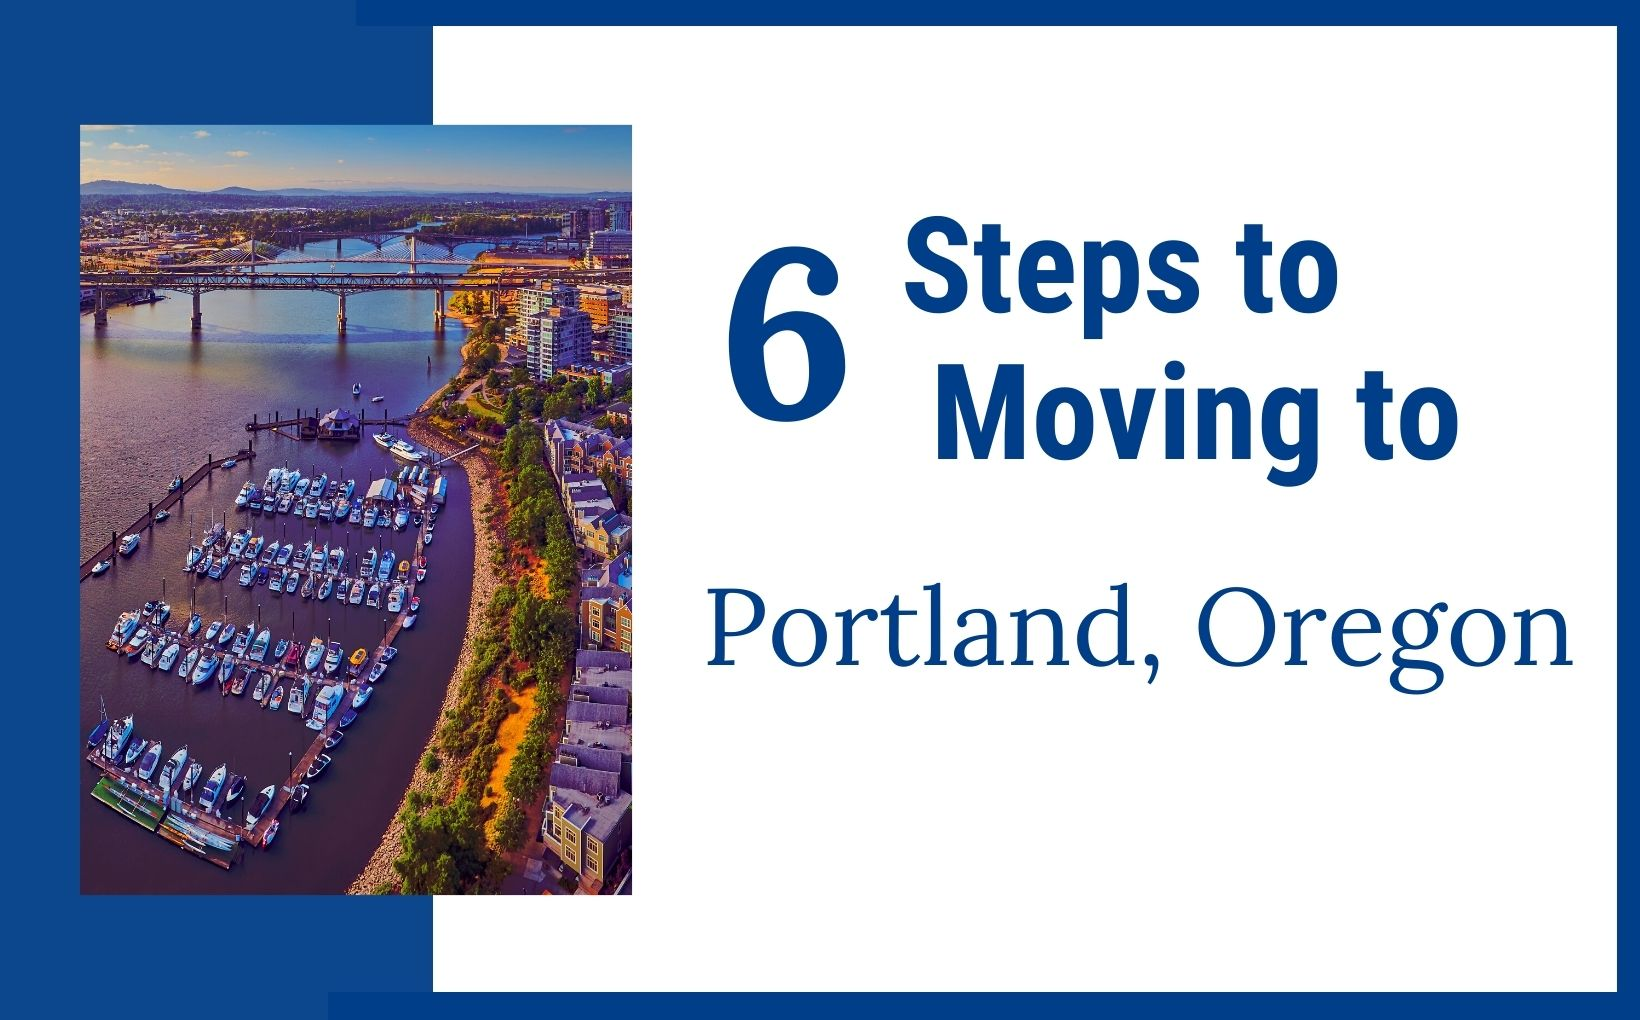 6 steps to moving to Portland Oregon feature image